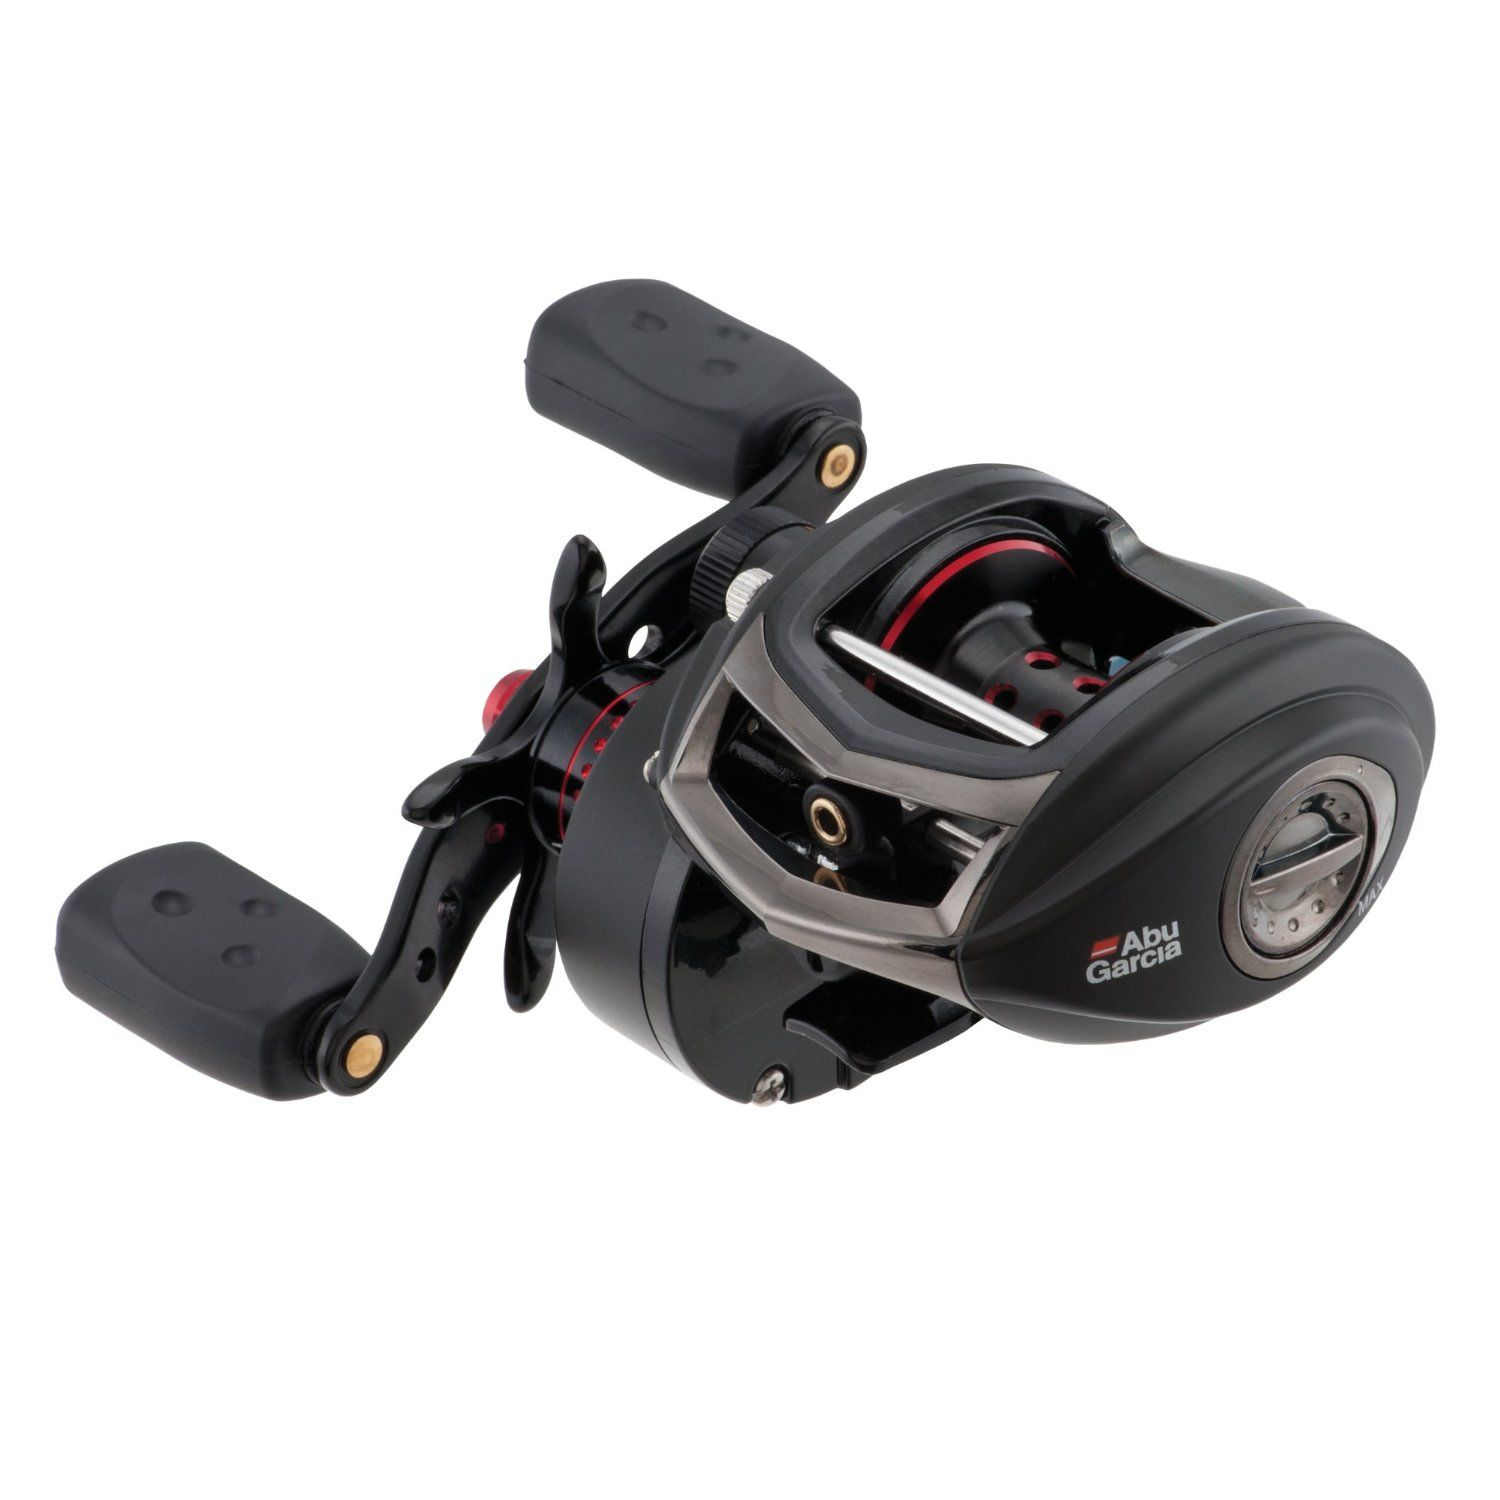 Abu Garcia Revo SX Low Profile reel review